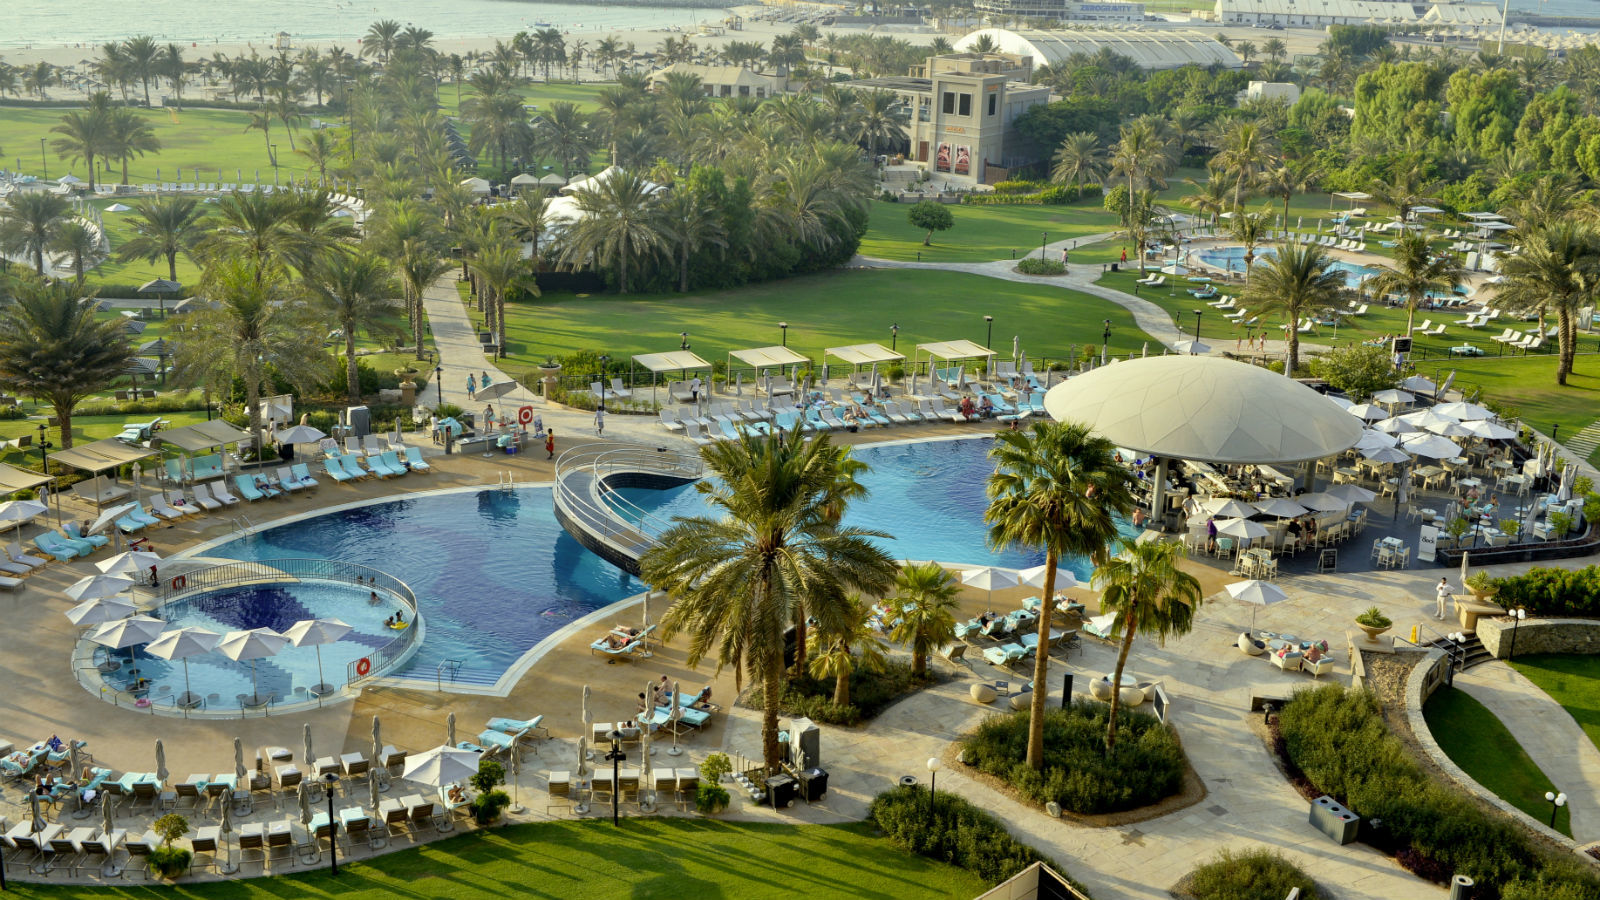 Pool And Beach Facility For Non Resident Guests  Le Royal